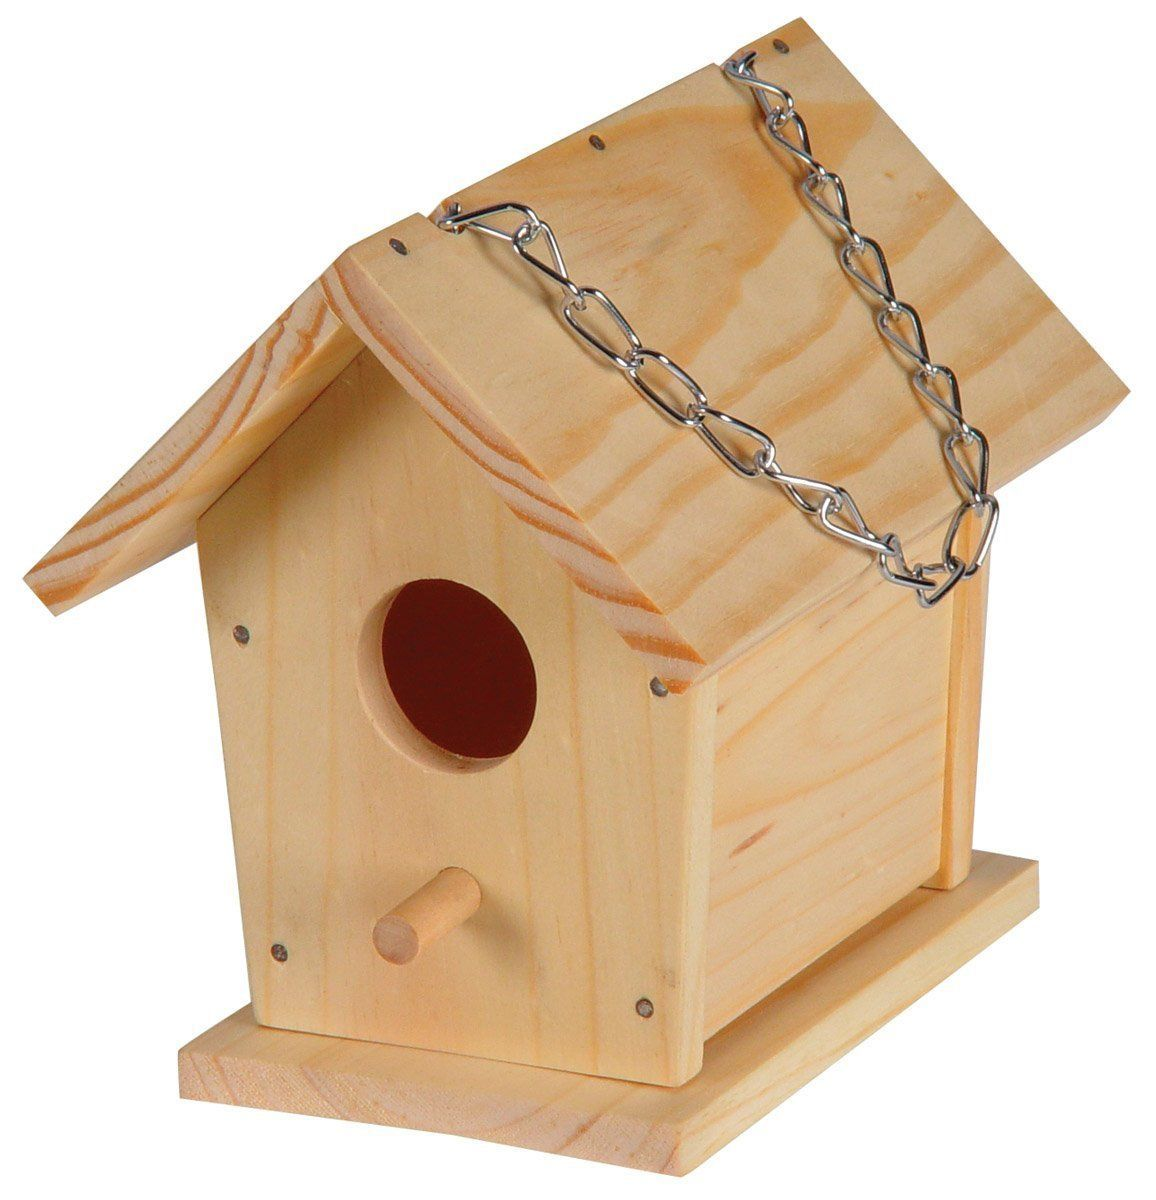 Toysmith - Build a Birdhouse image